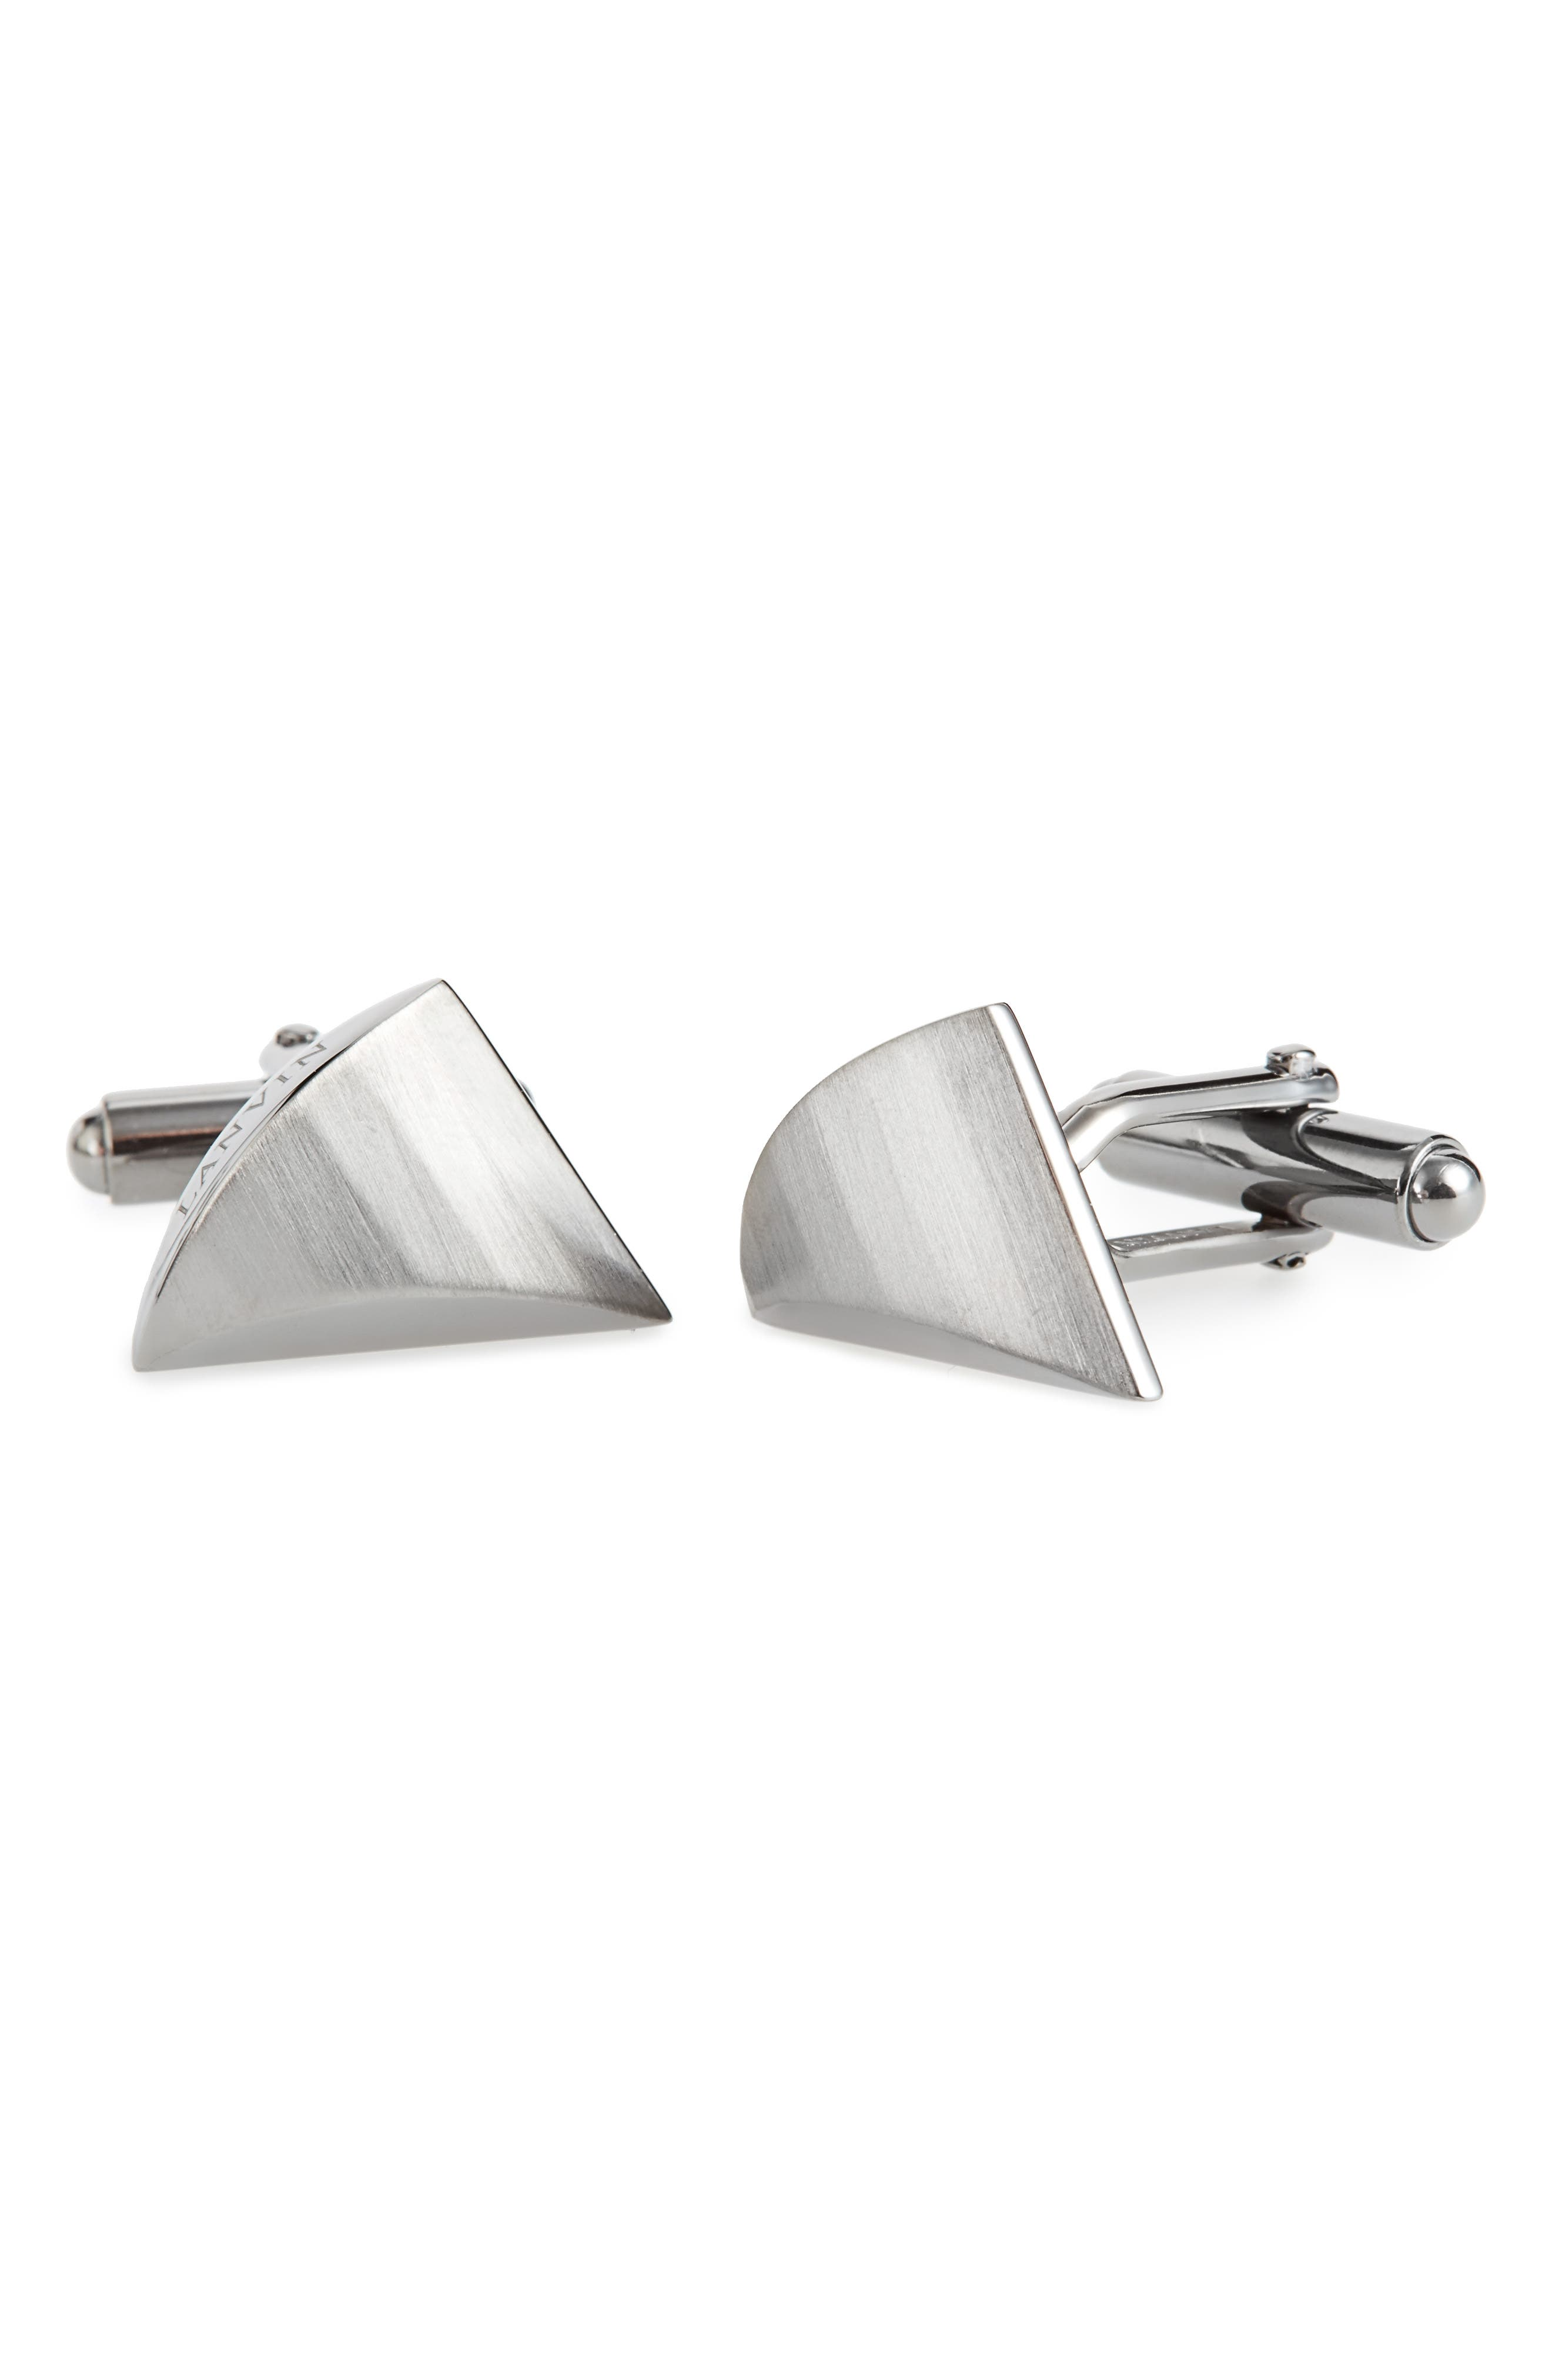 Faux Shark Tooth Cuff Links,                             Main thumbnail 1, color,                             040